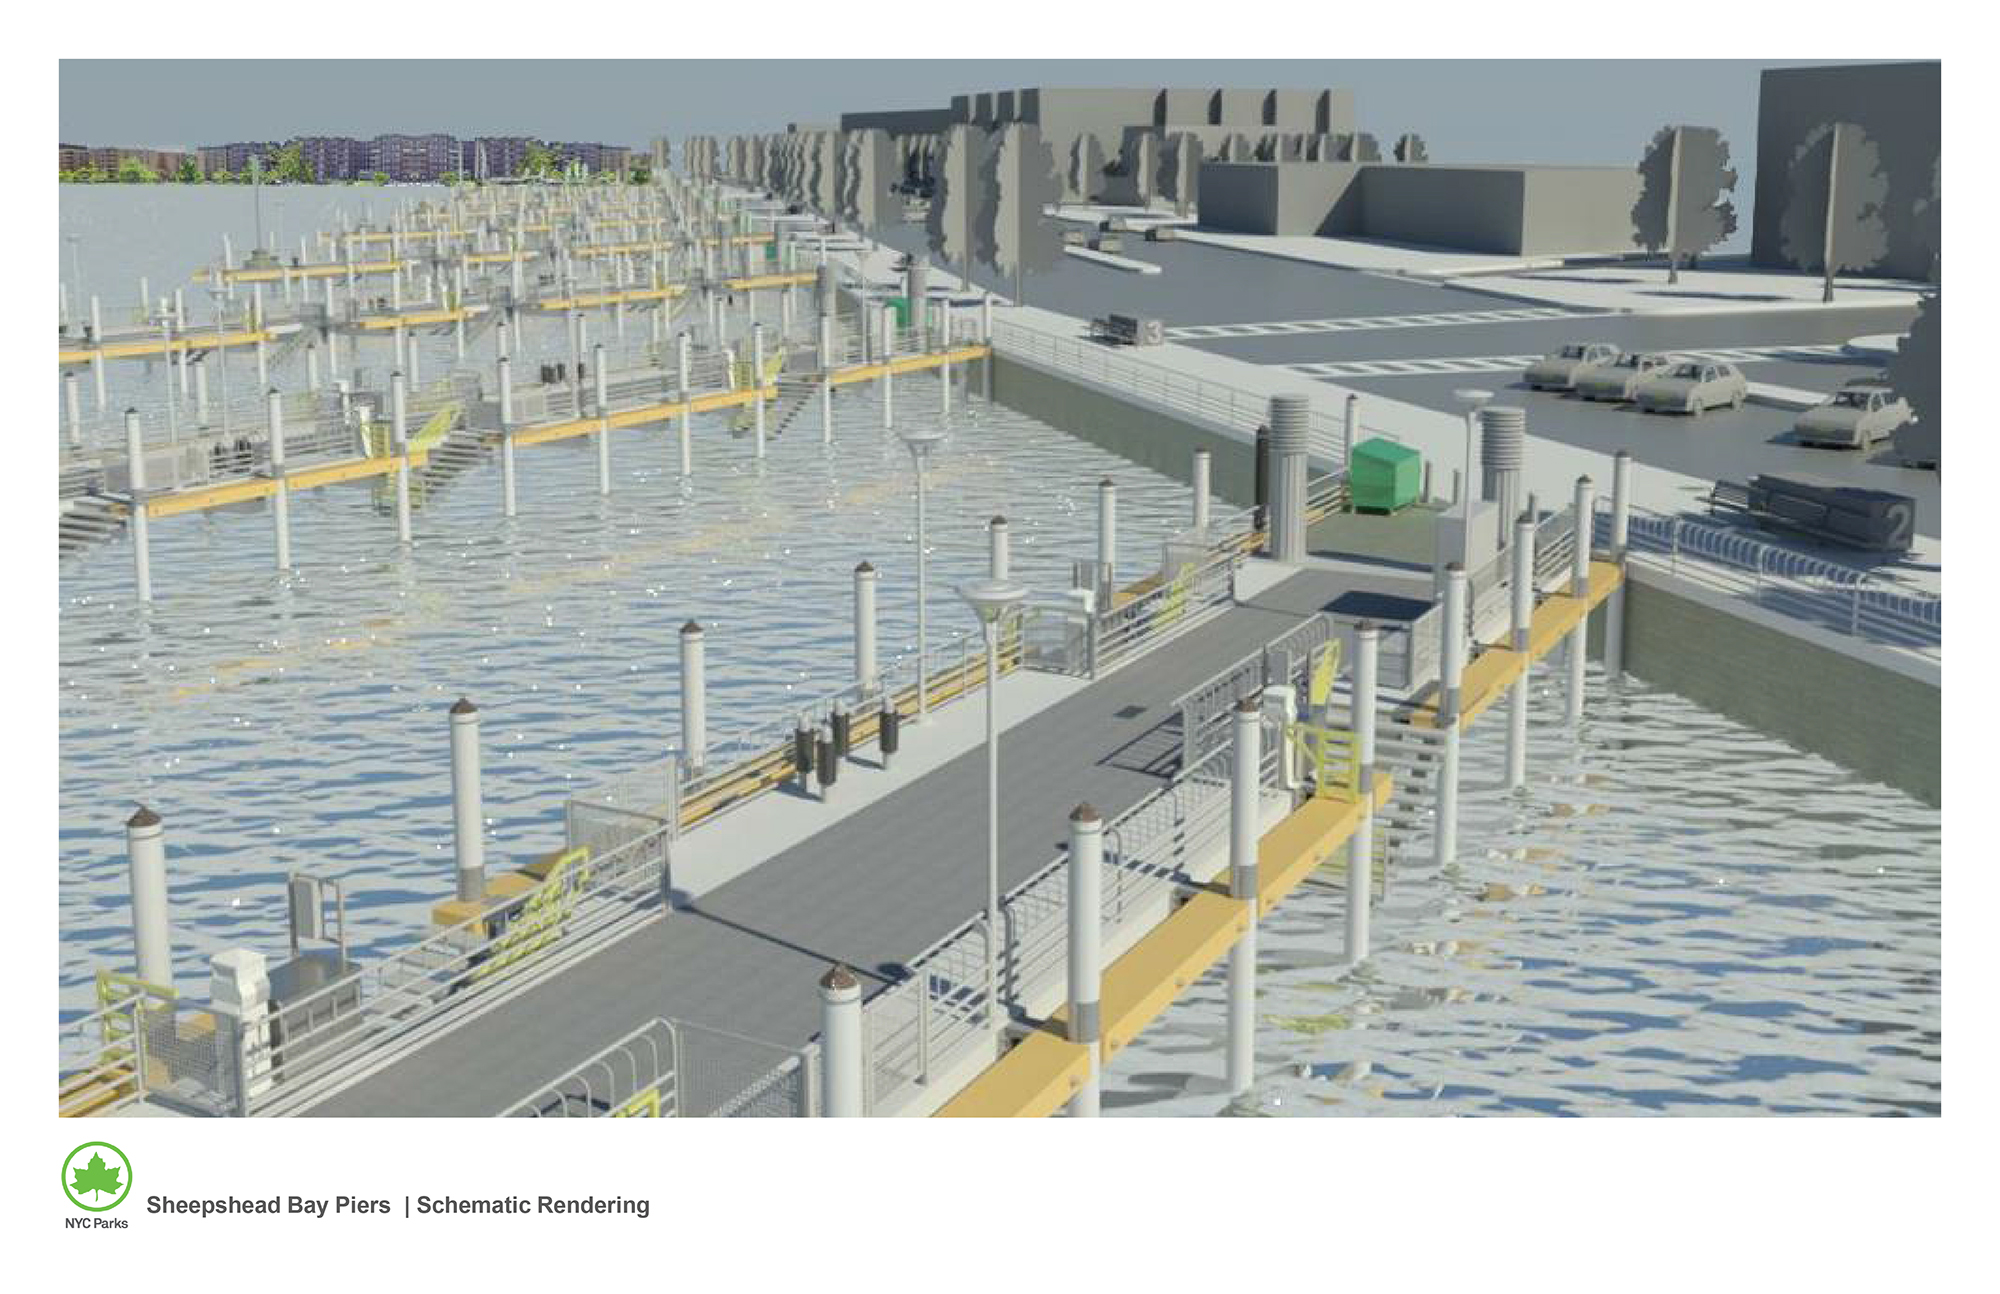 Design of Sheepshead Bay Piers Electrical & Structural Components Reconstruction (Hurricane Sandy)